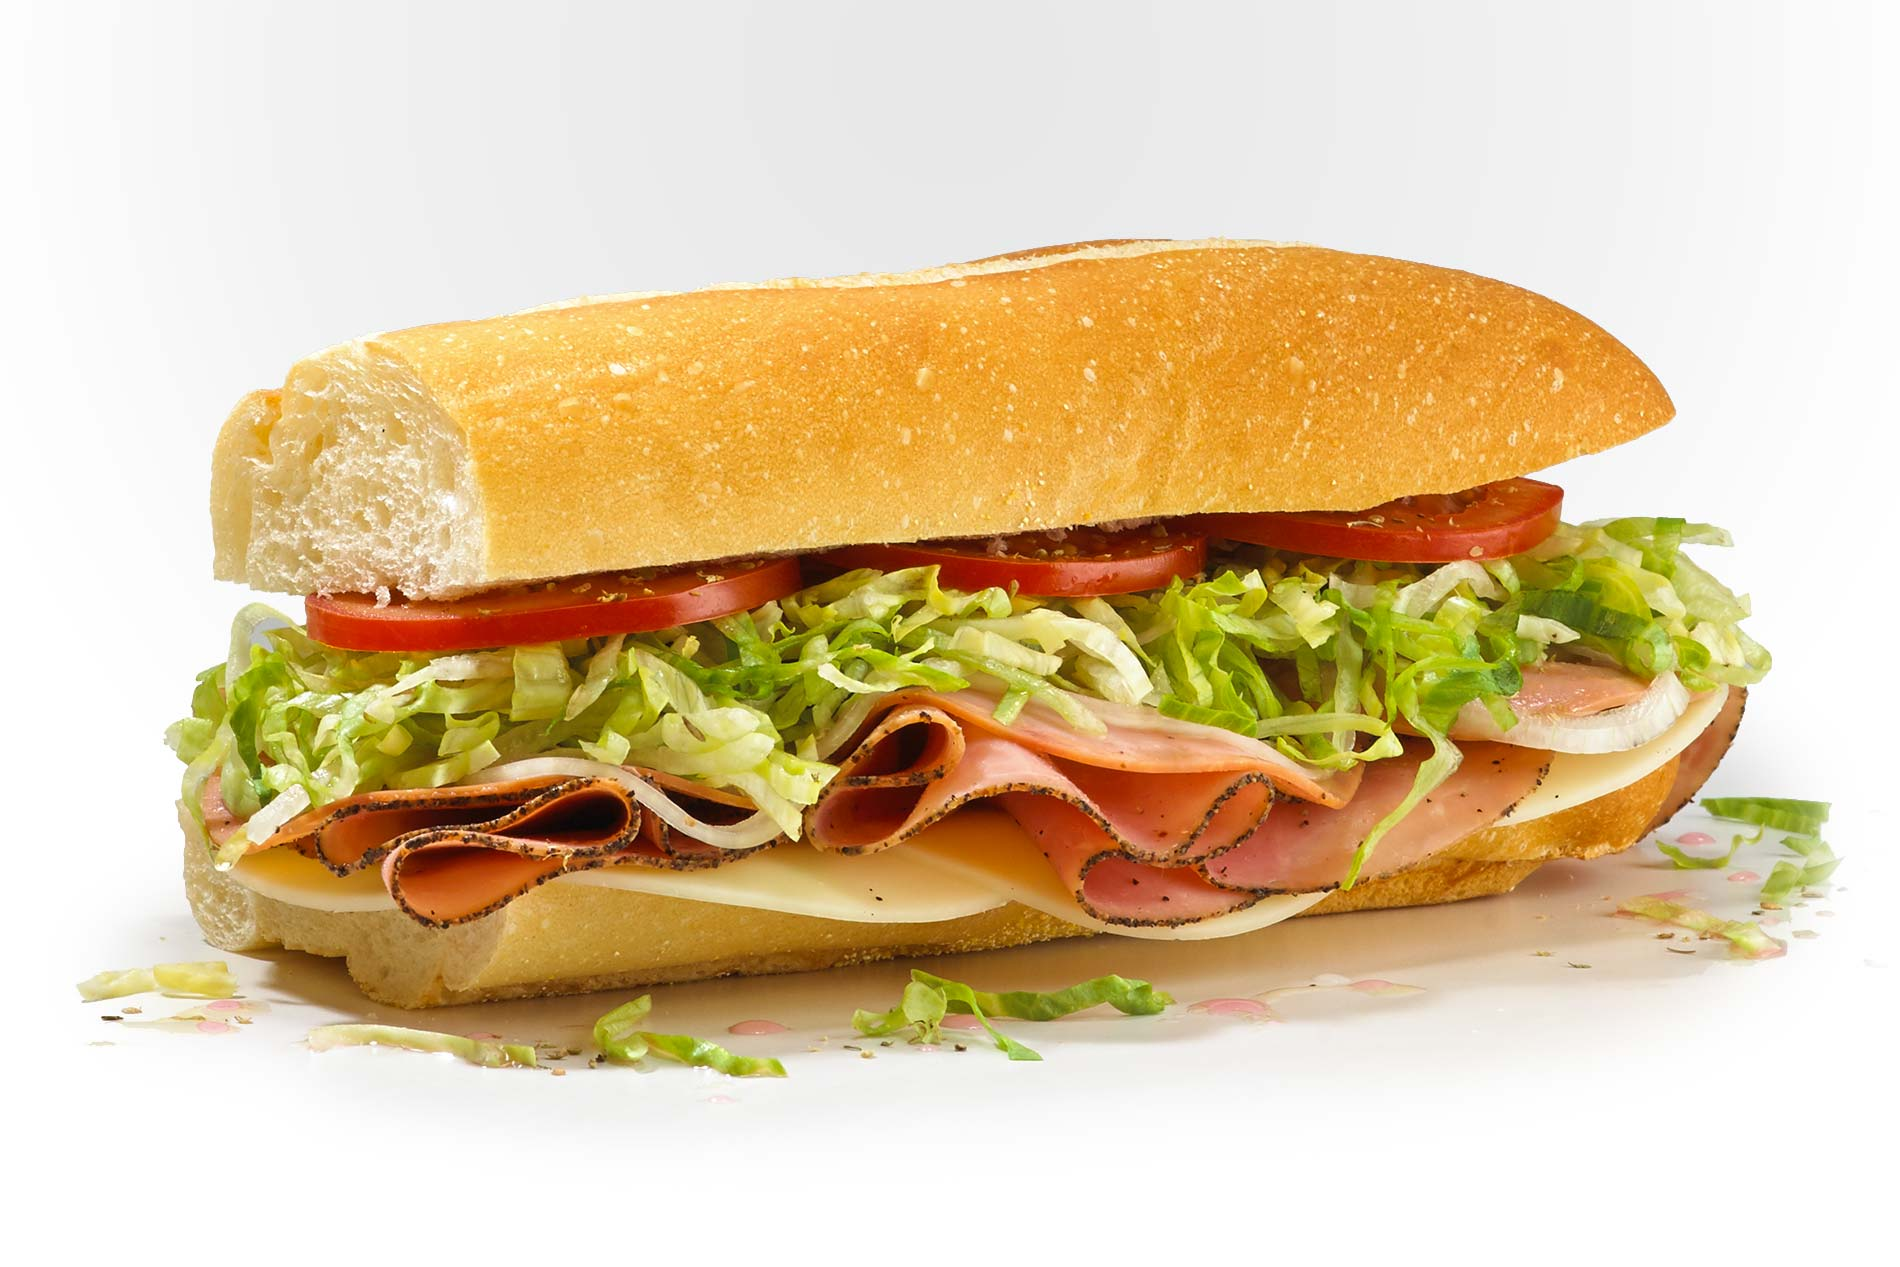 #4 The Number Four - Fresh Sliced Cold Subs